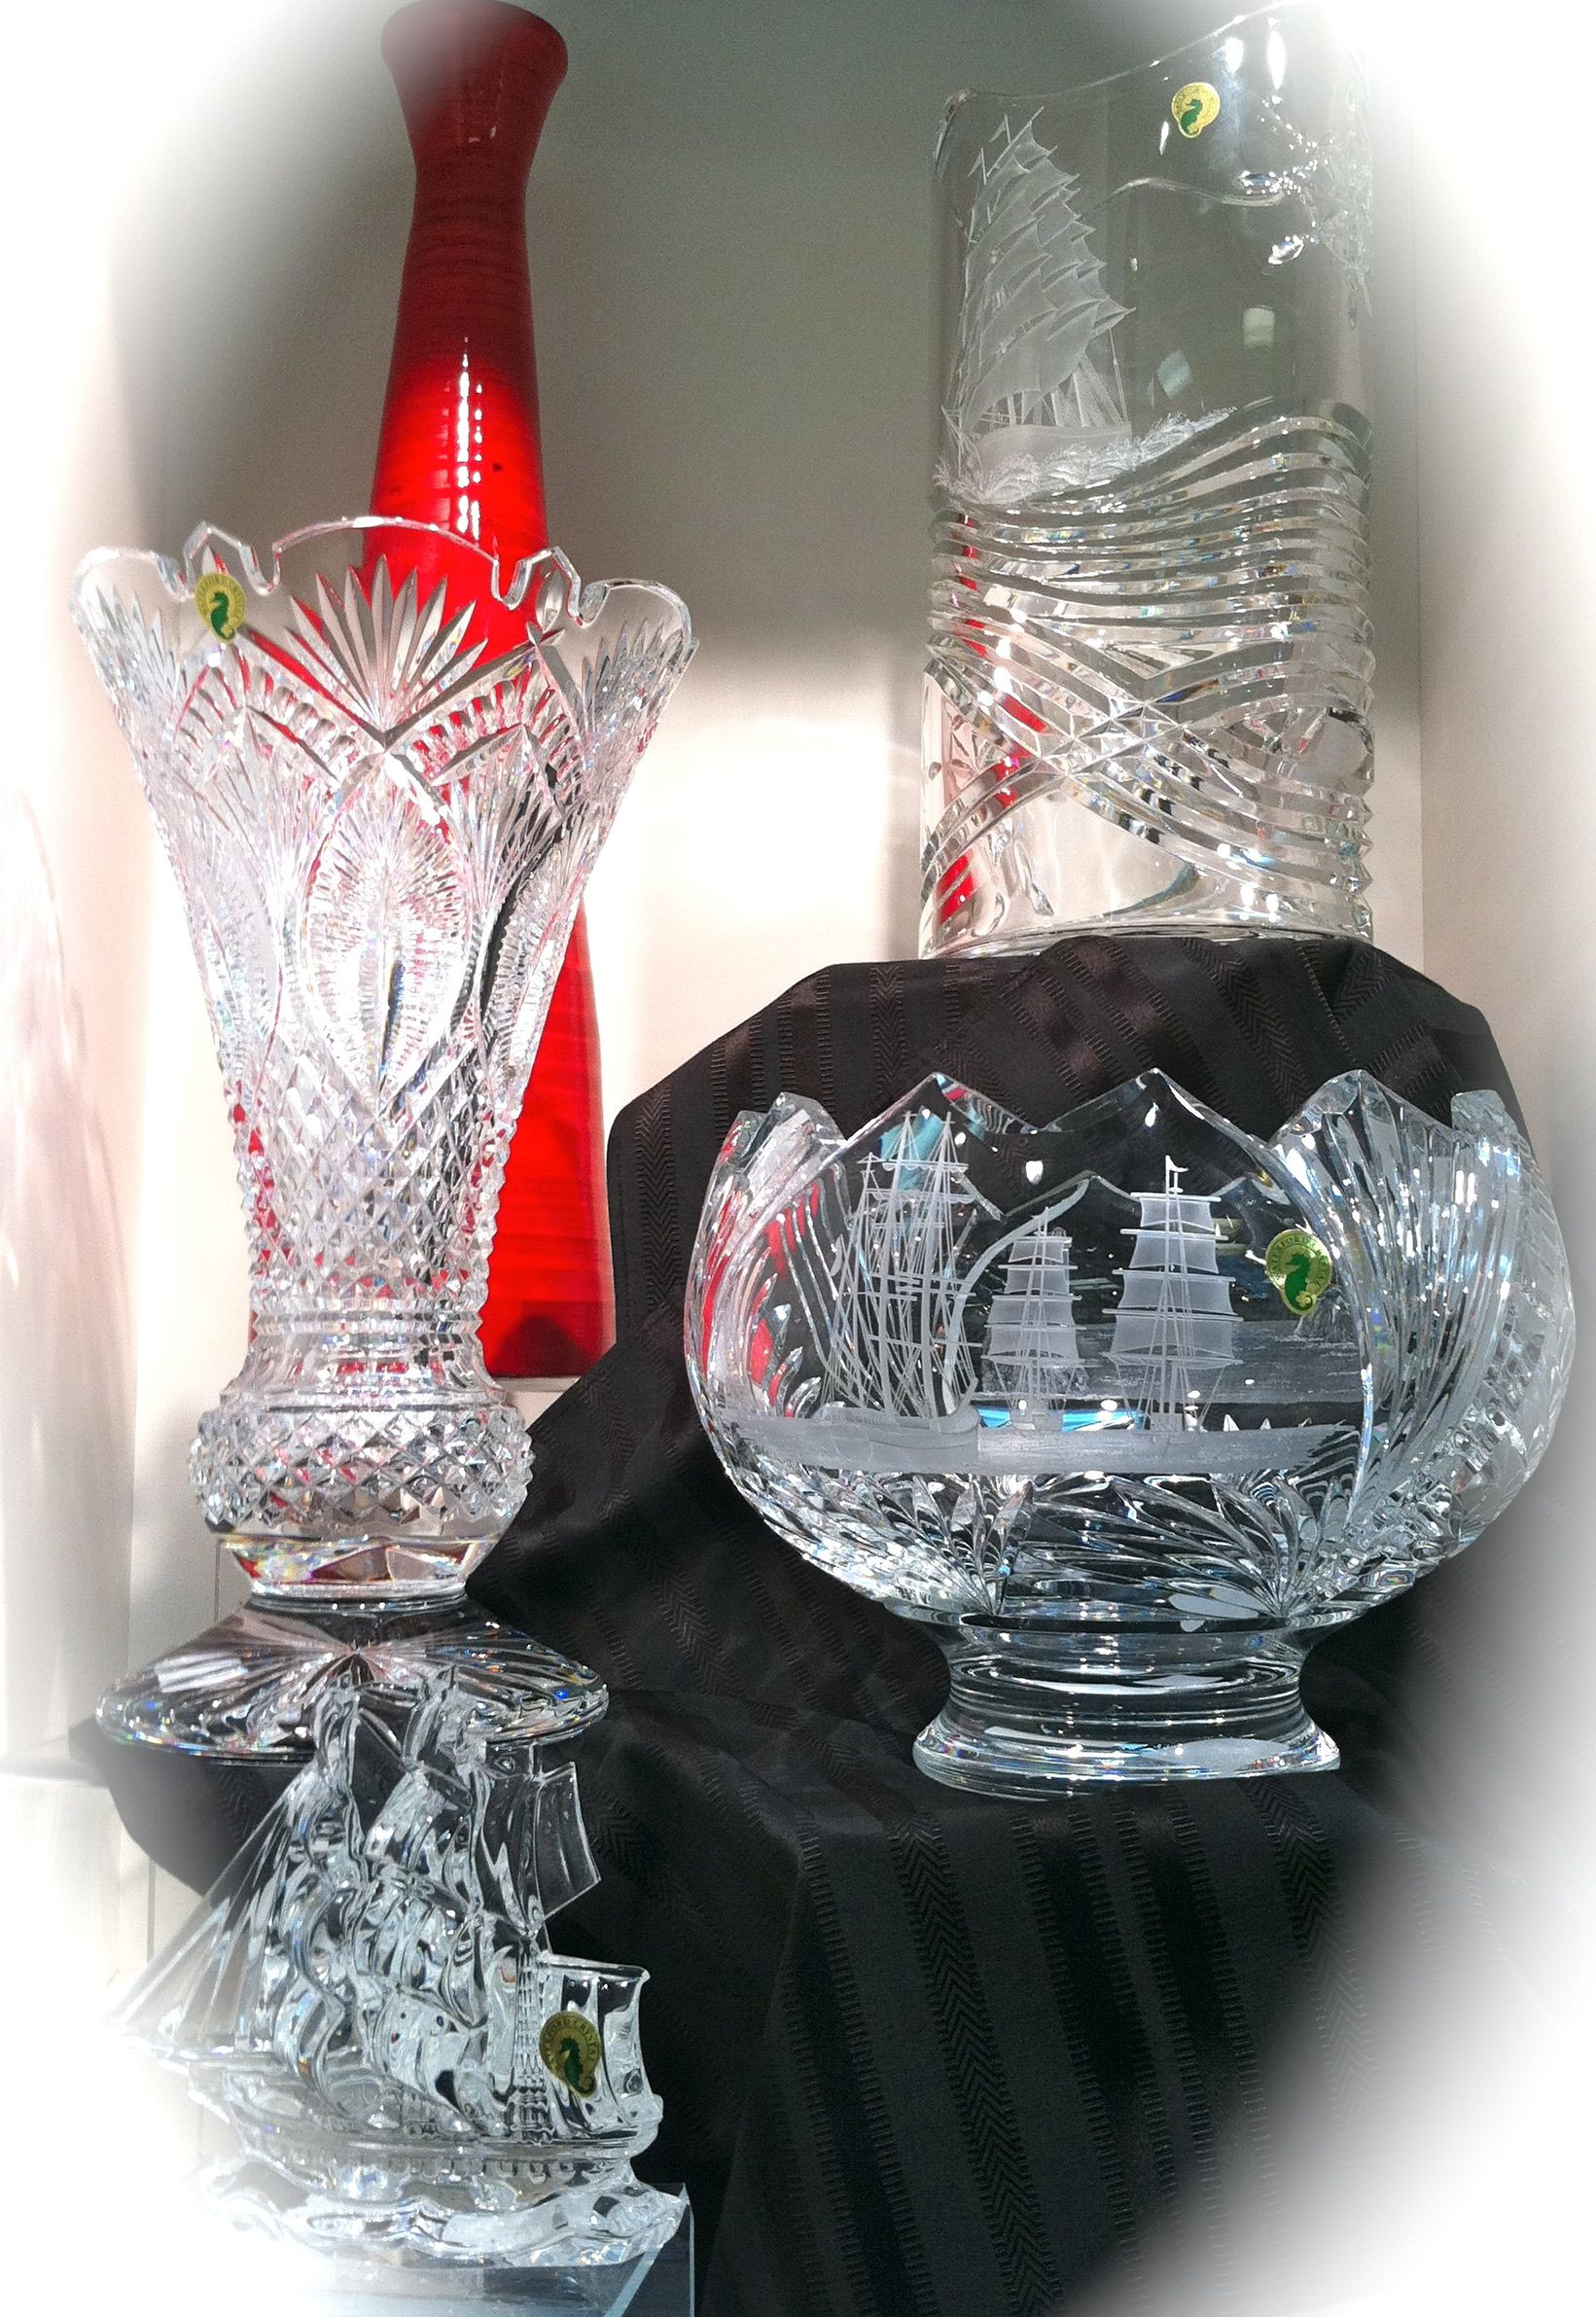 16 Unique Waterford Crystal Vase Price 2021 free download waterford crystal vase price of waterford crystal call 800 318 9805 for more info waterford with waterford crystal call 800 318 9805 for more info